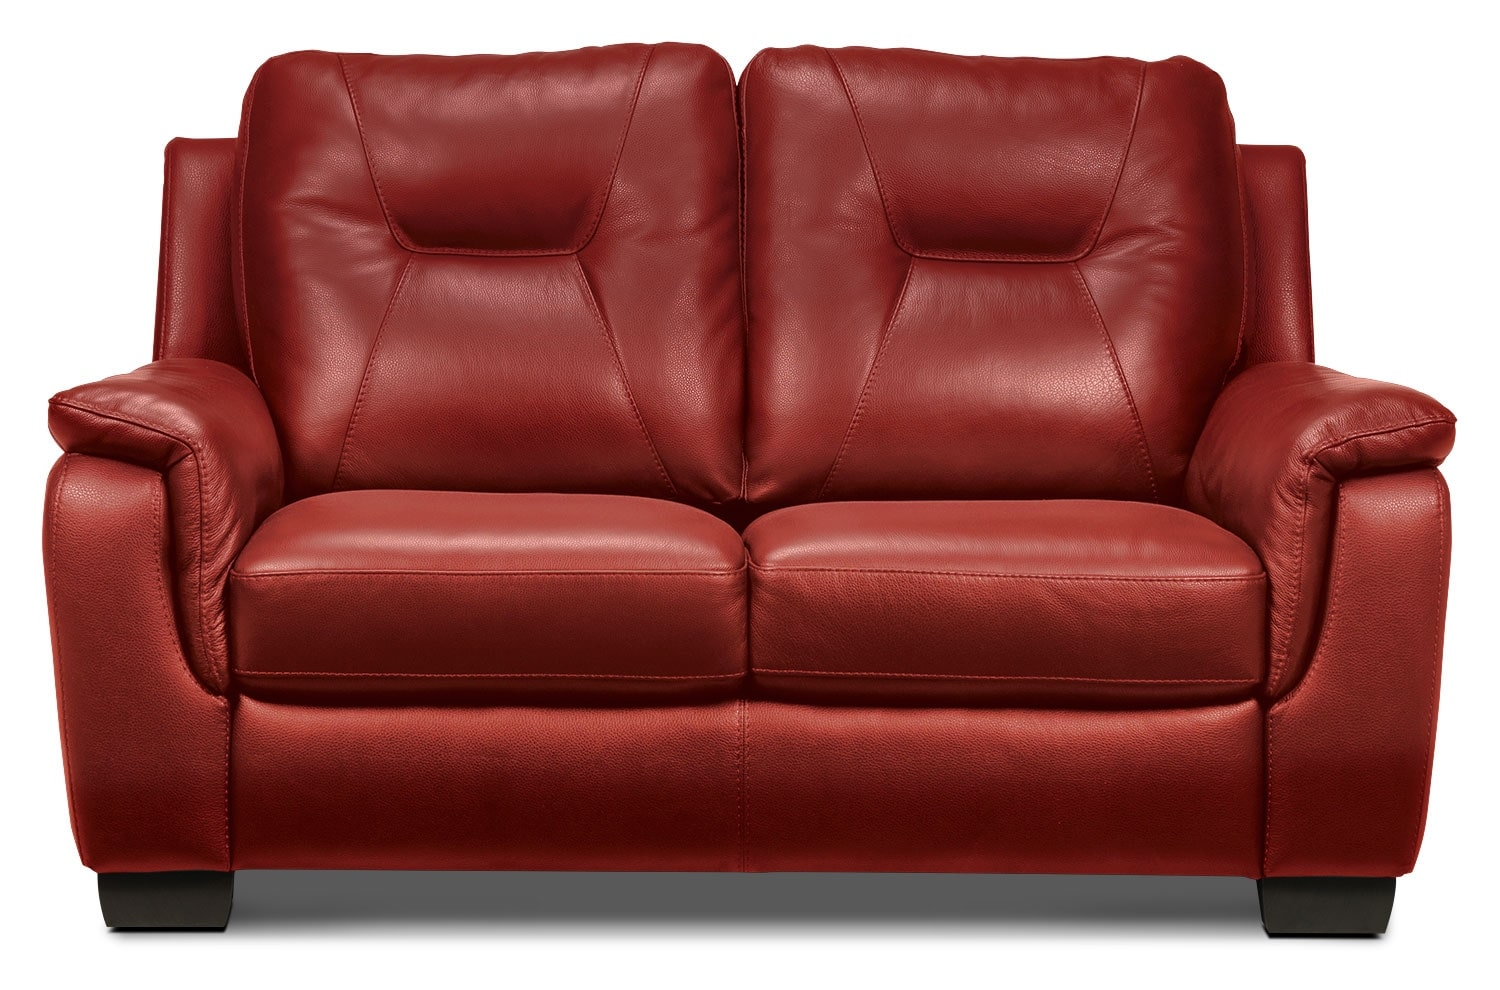 Dalia Loveseat - Red